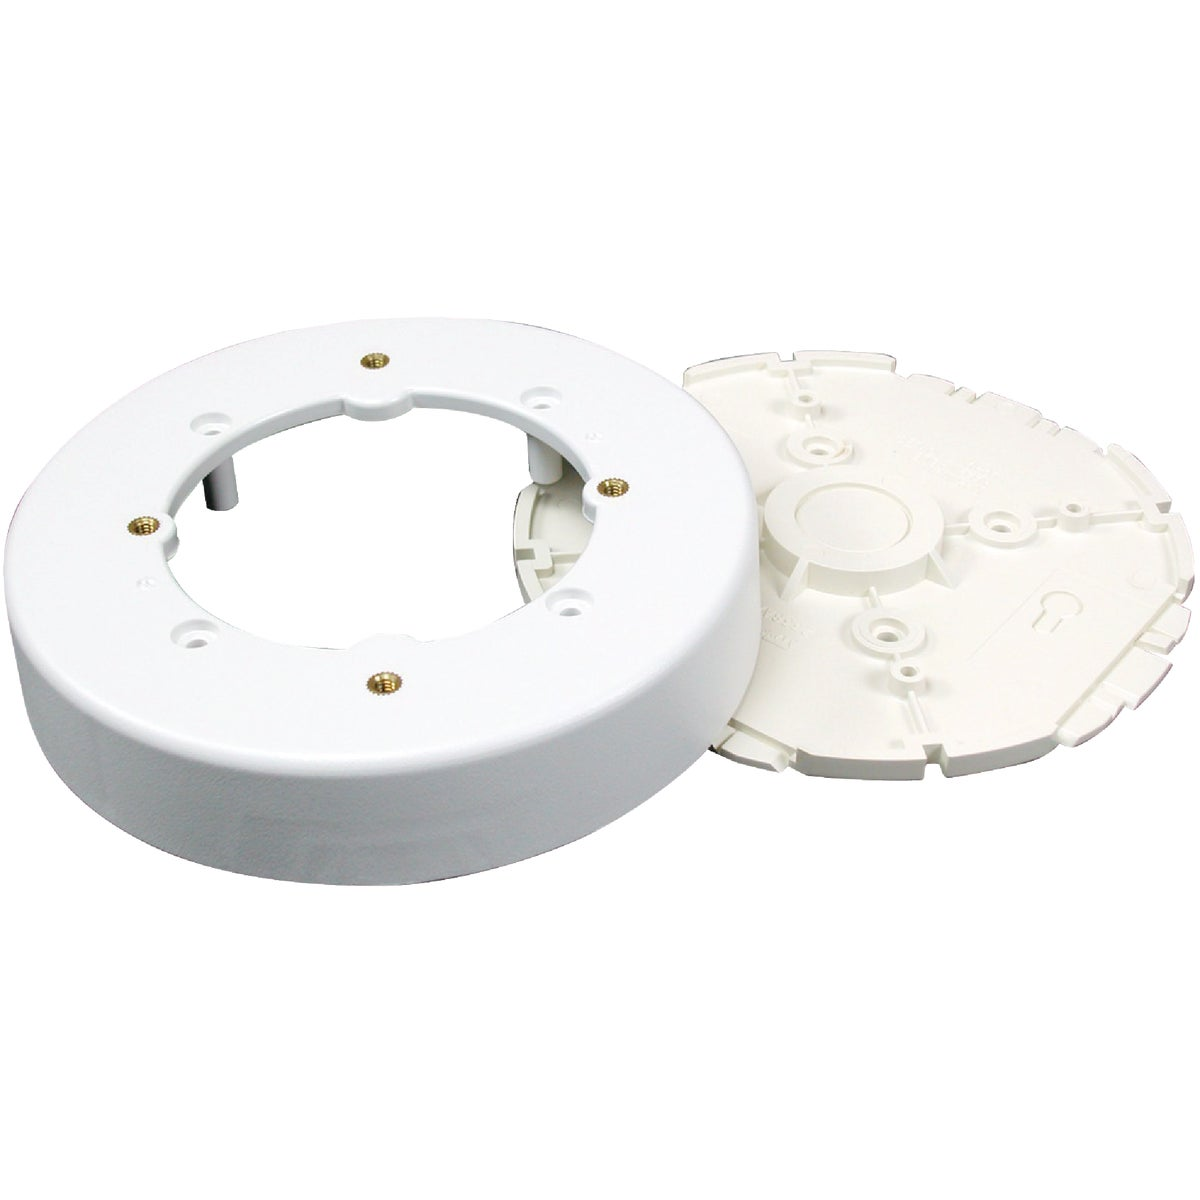 ROUND CEILING BOX - NMW4 by Wiremold / Legrand